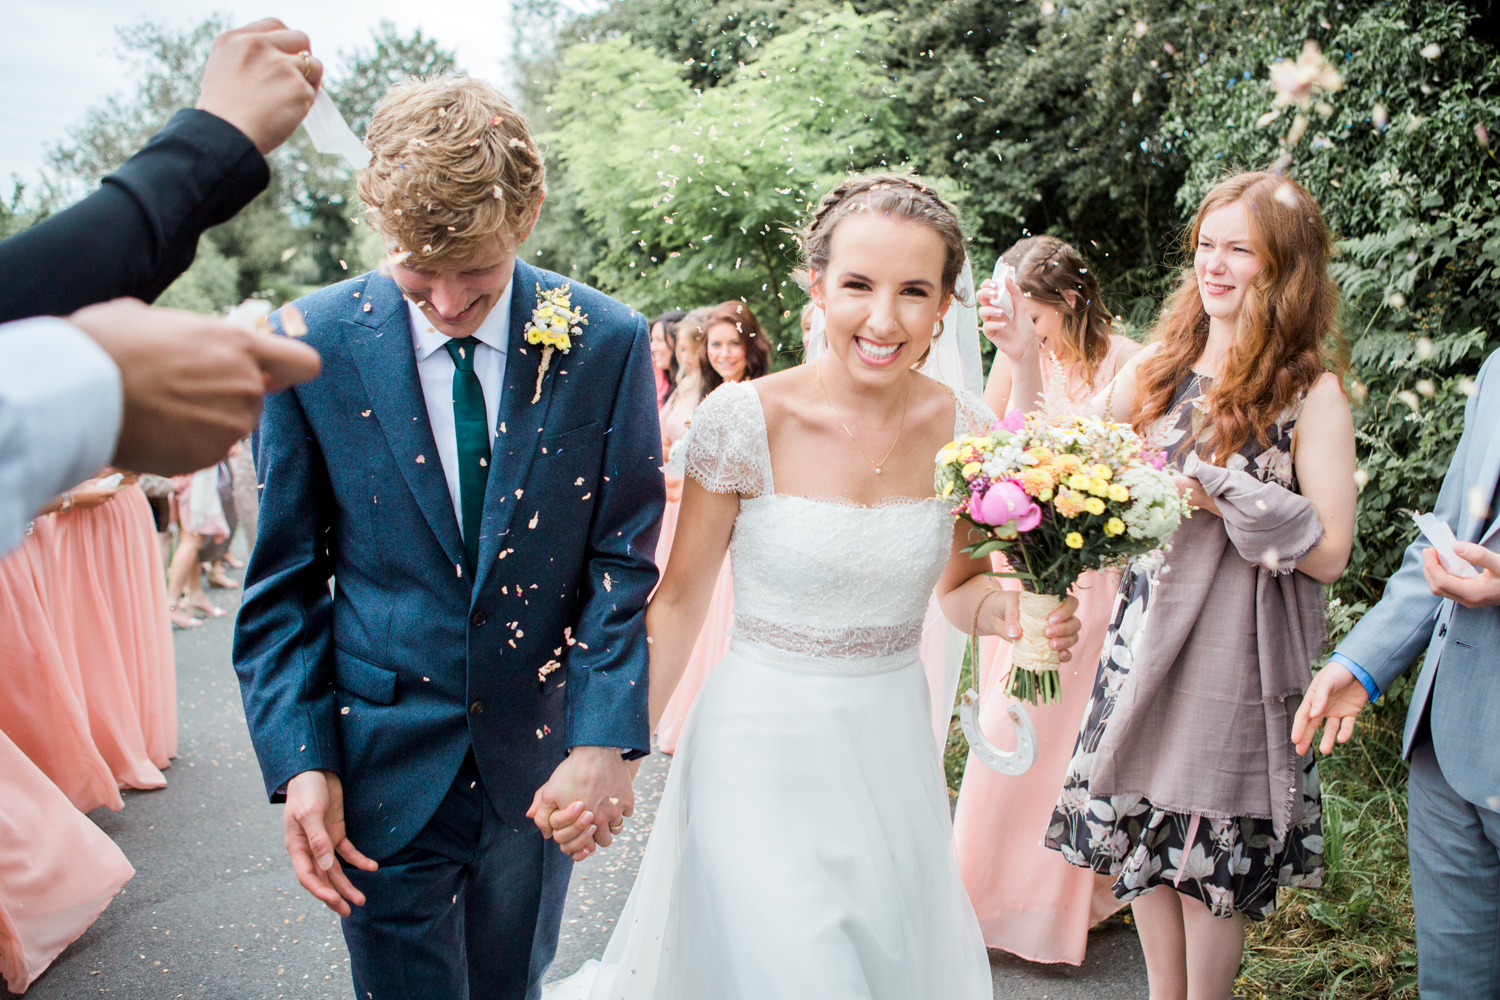 059Lotti & Dave marquee wedding Sophie Evans Photography West Midlands reportage wedding photography.jpg